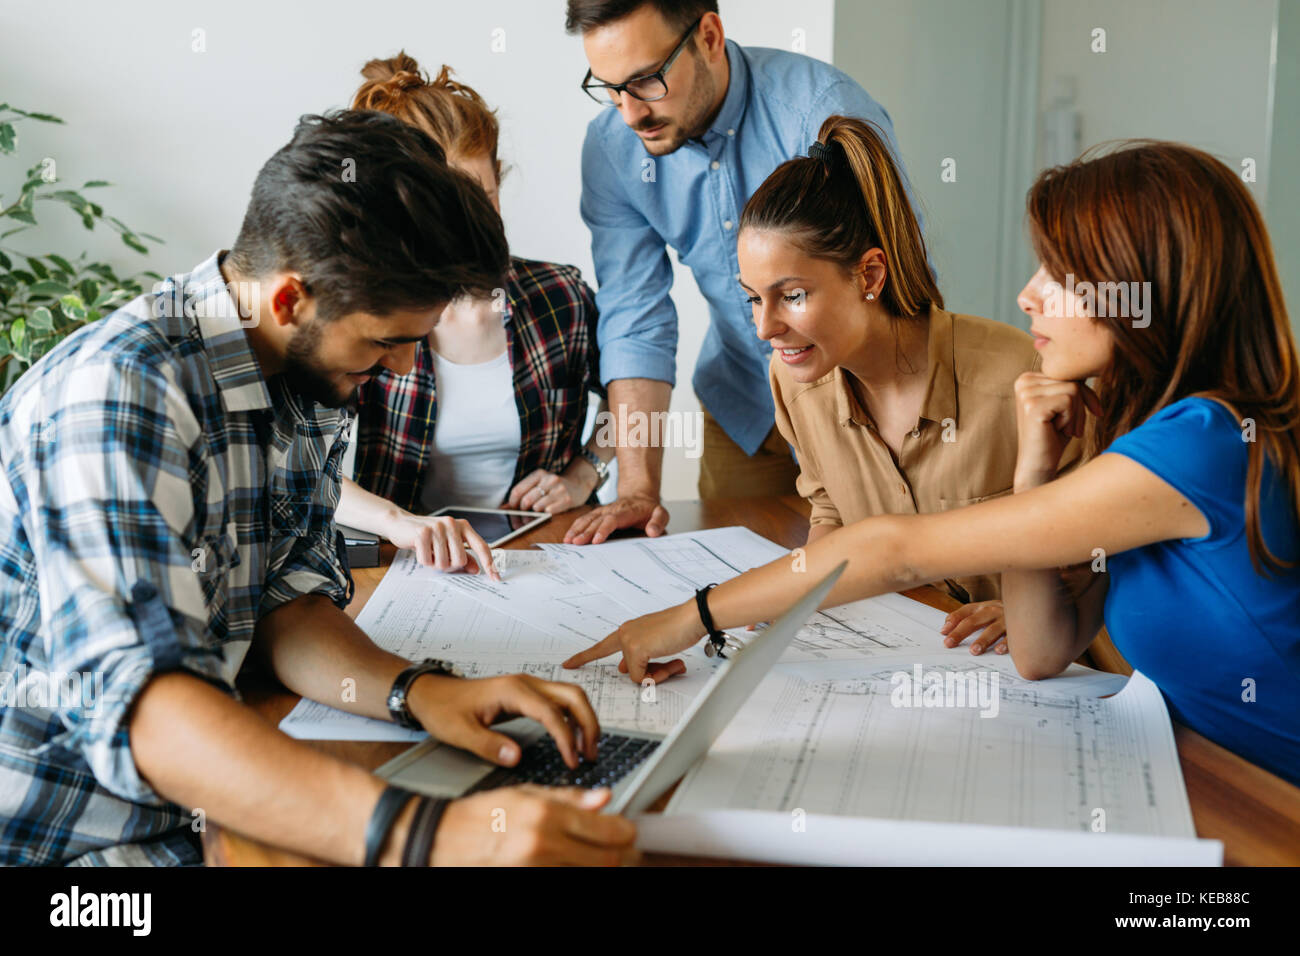 Image of business partners discussing documents and ideas - Stock Image